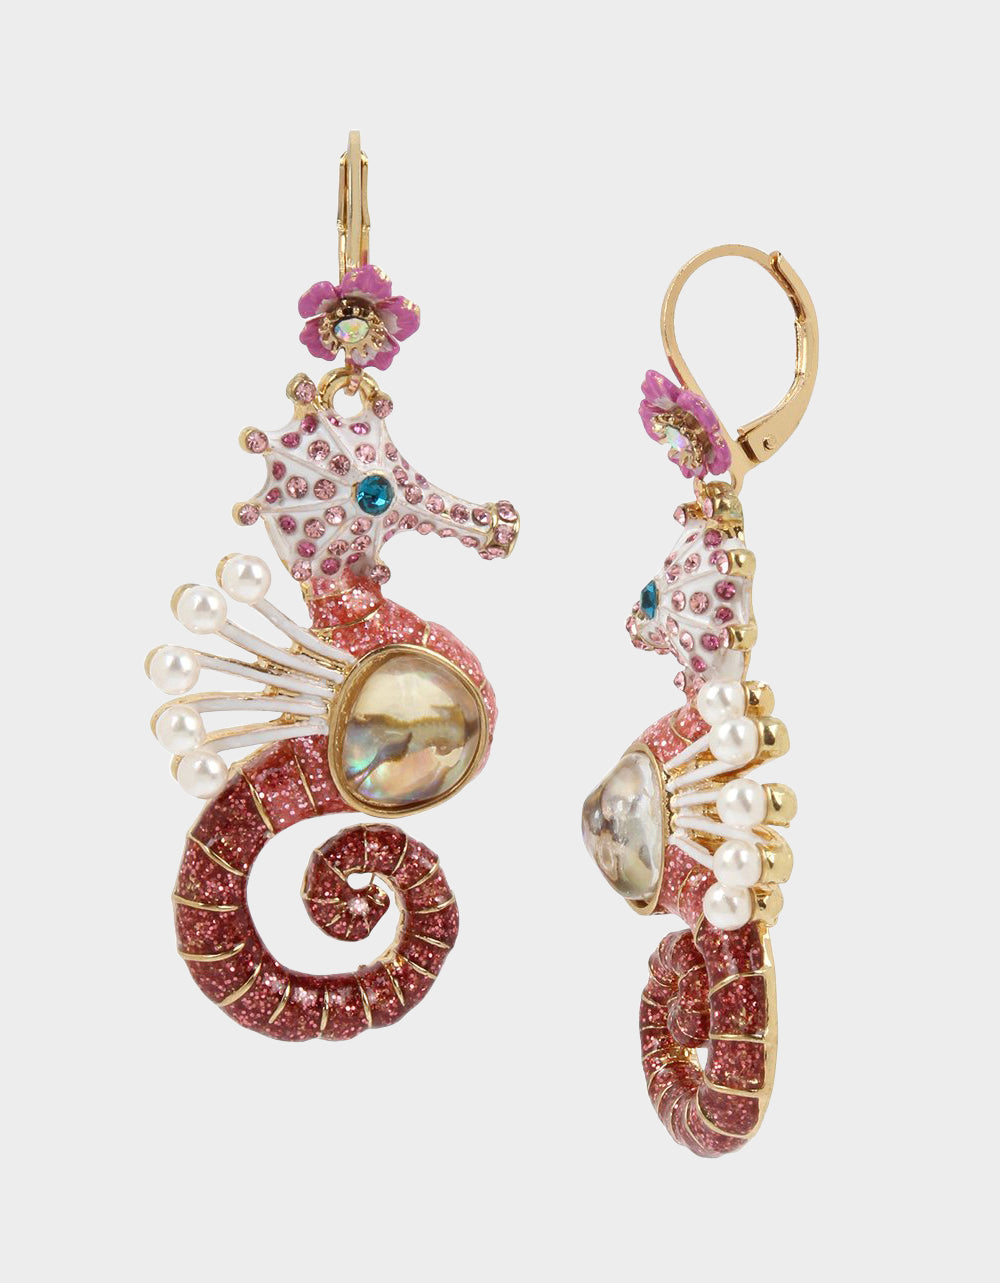 FESTIVAL MERMAID SEAHORSE DROP EARRINGS PINK - JEWELRY - Betsey Johnson